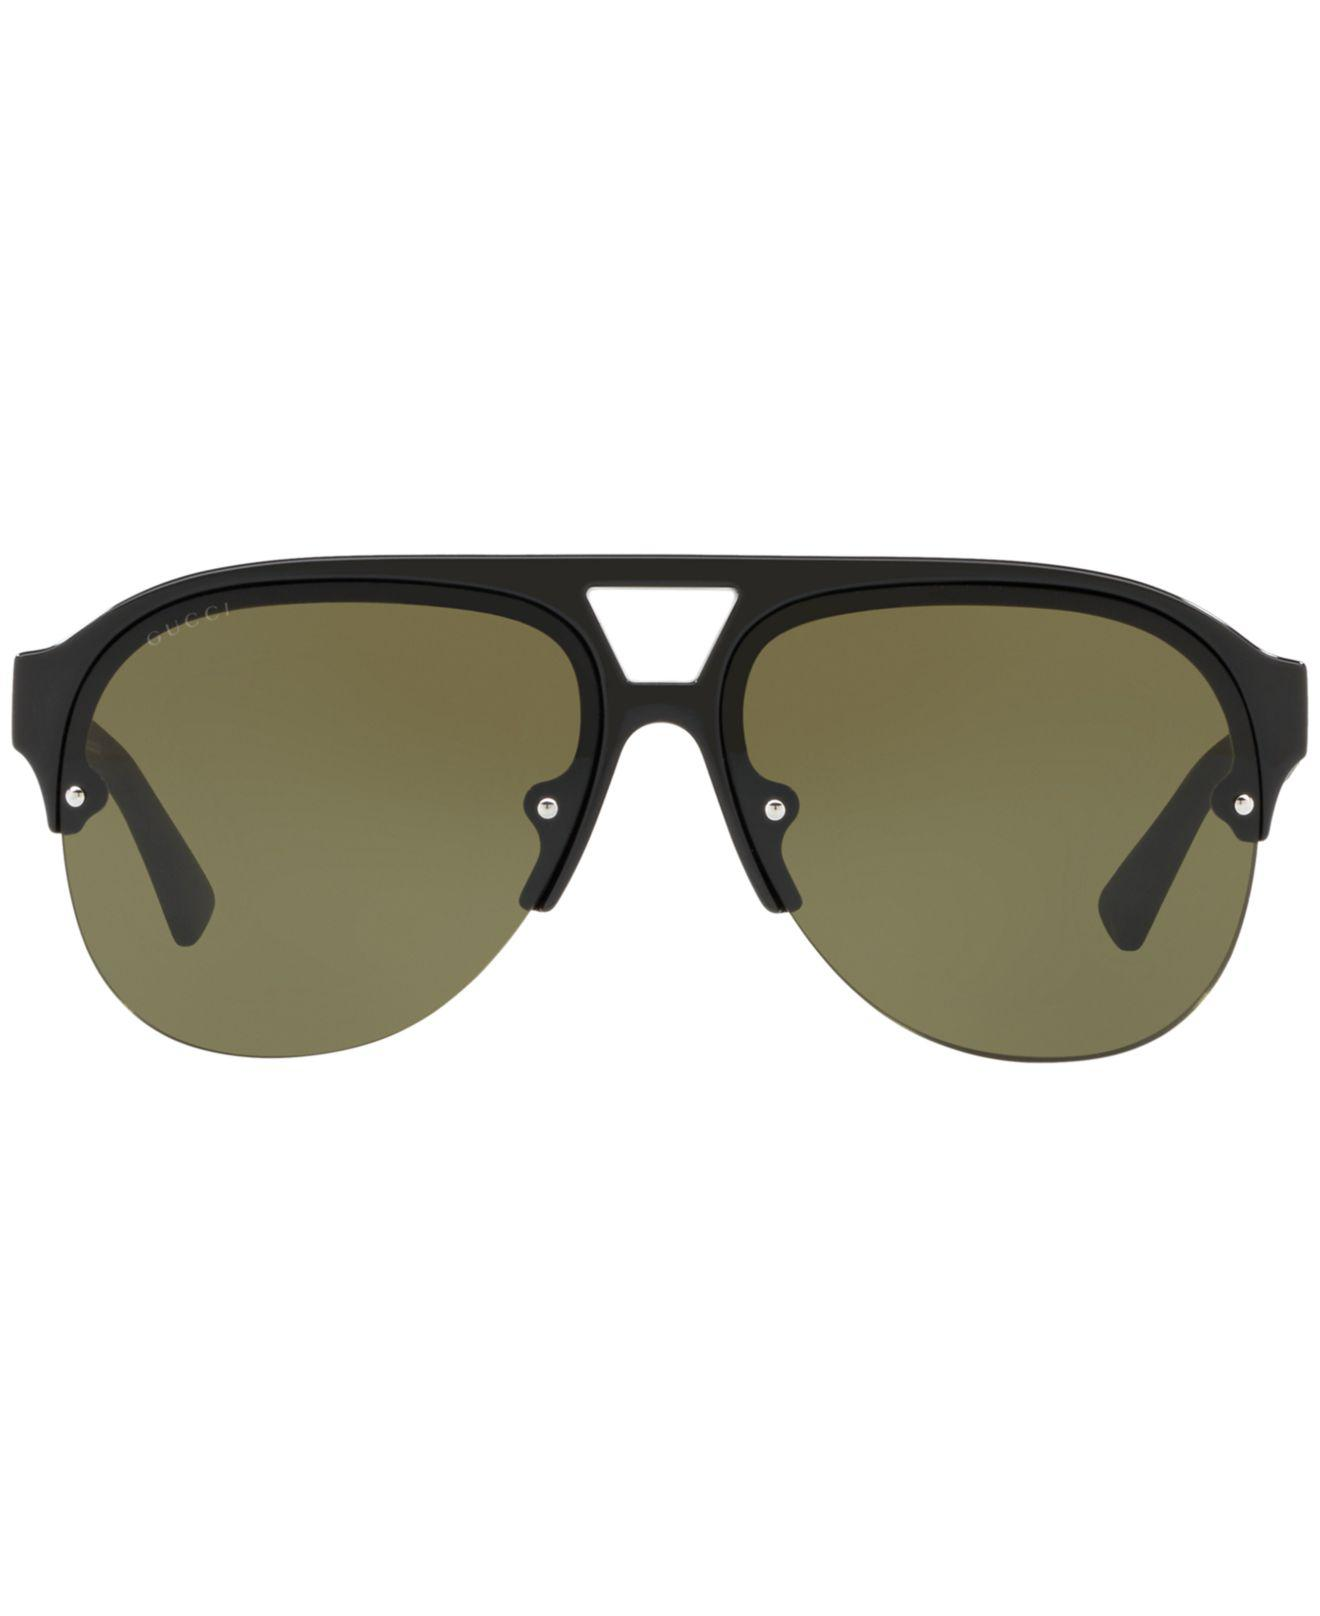 7a3eb4ba8be Lyst - Gucci Gc001115 in Green for Men